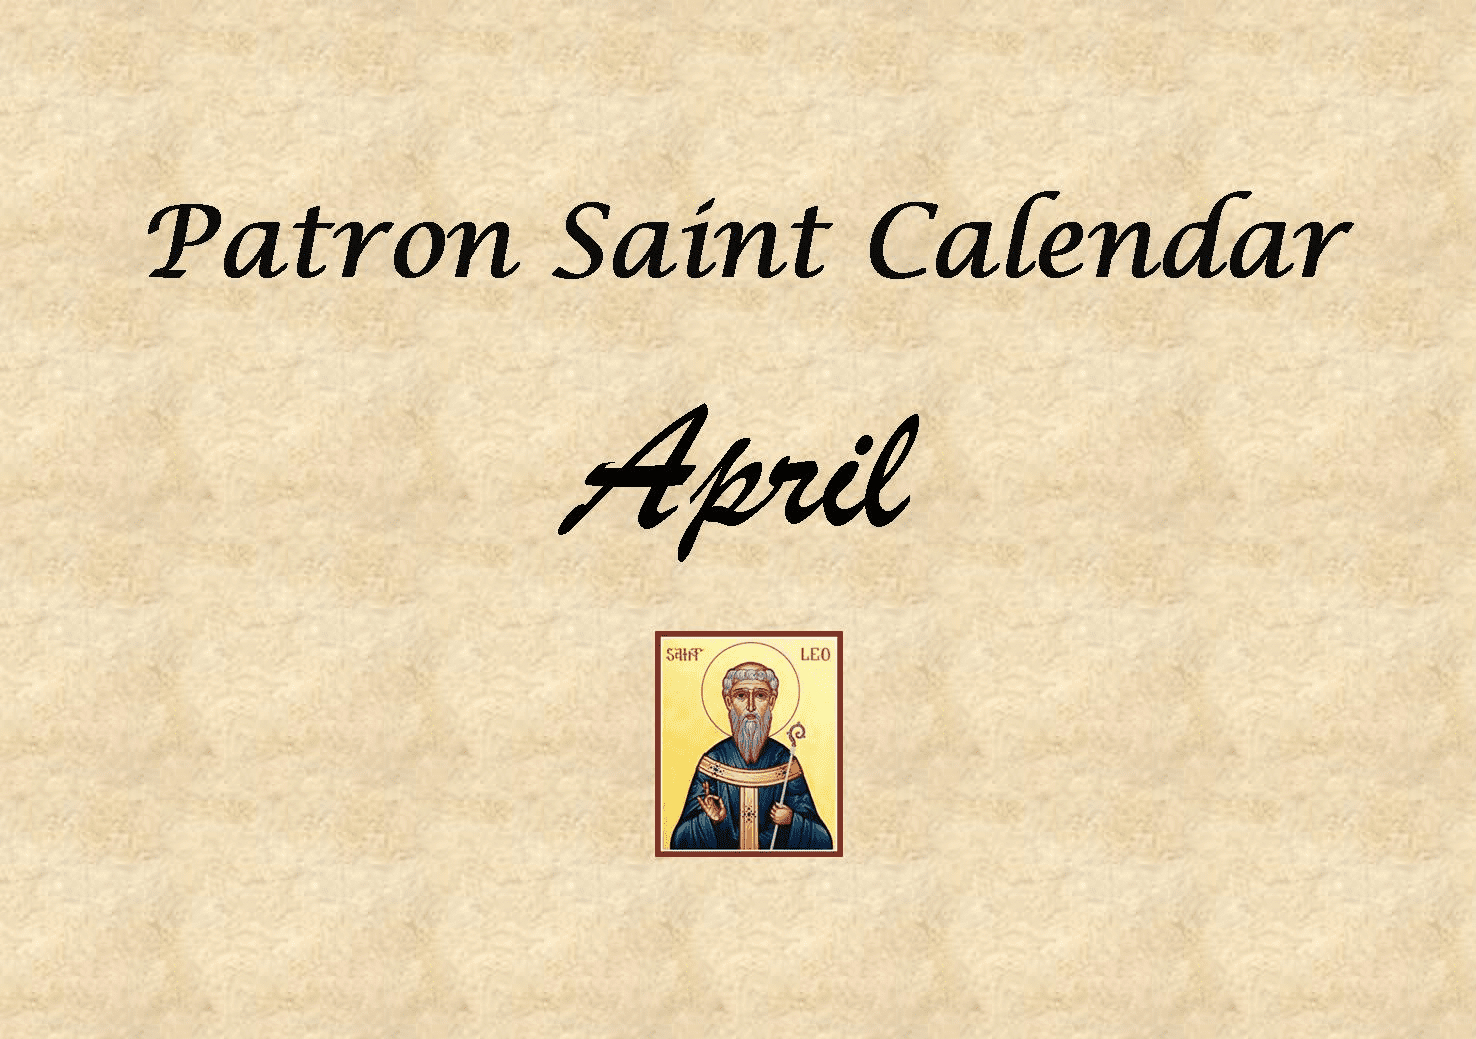 Patron Saint Memorial Feast Day for the Month of April